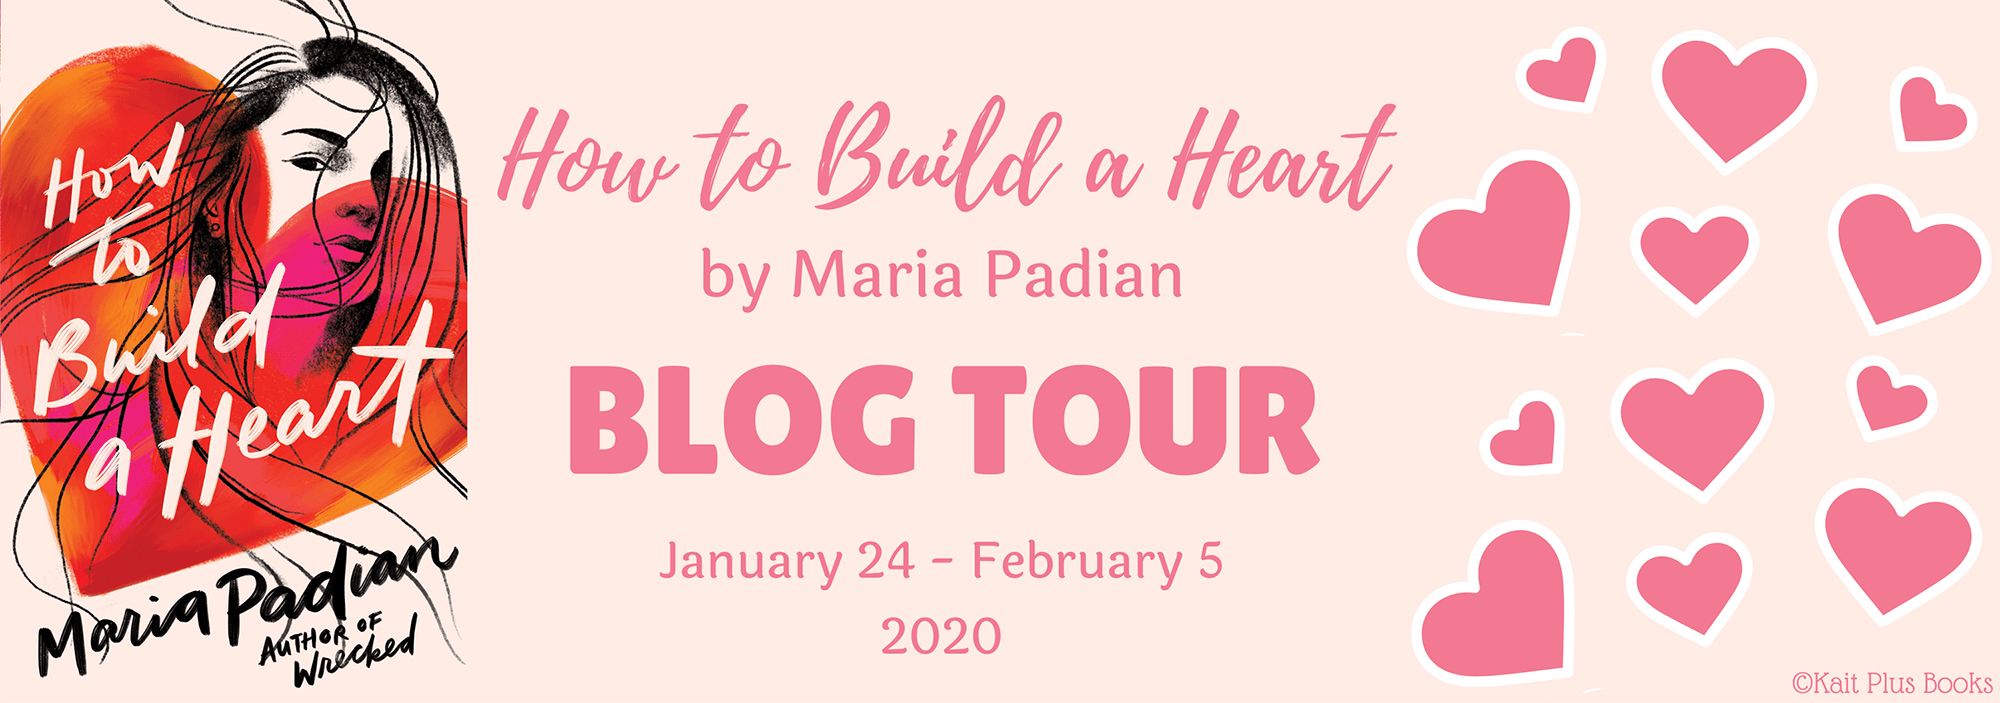 Blog Tour: How to Build a Heart by Maria Padian (Review!)